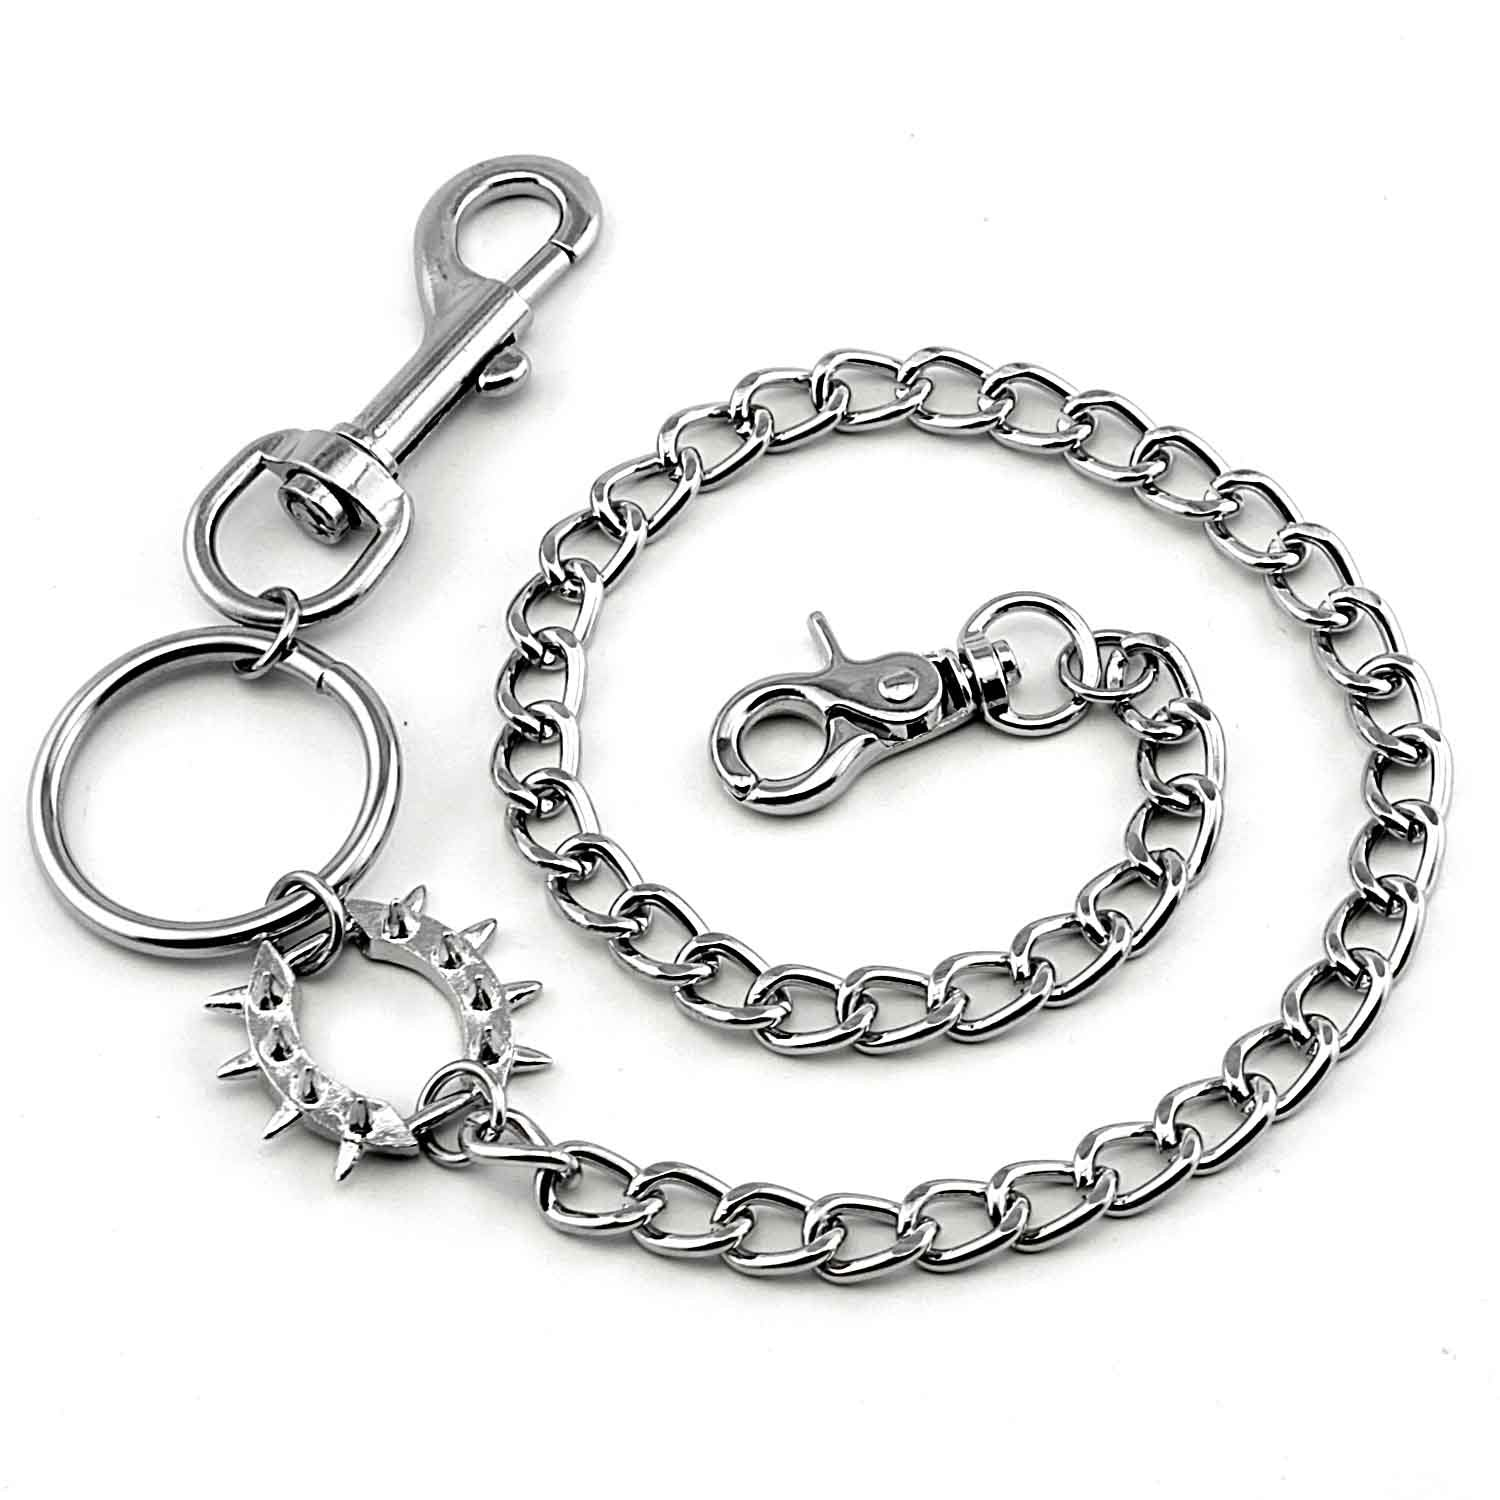 Badass Silver Punk Mens Wallet Chain Pants Chain Long Biker Wallet CHain For Men